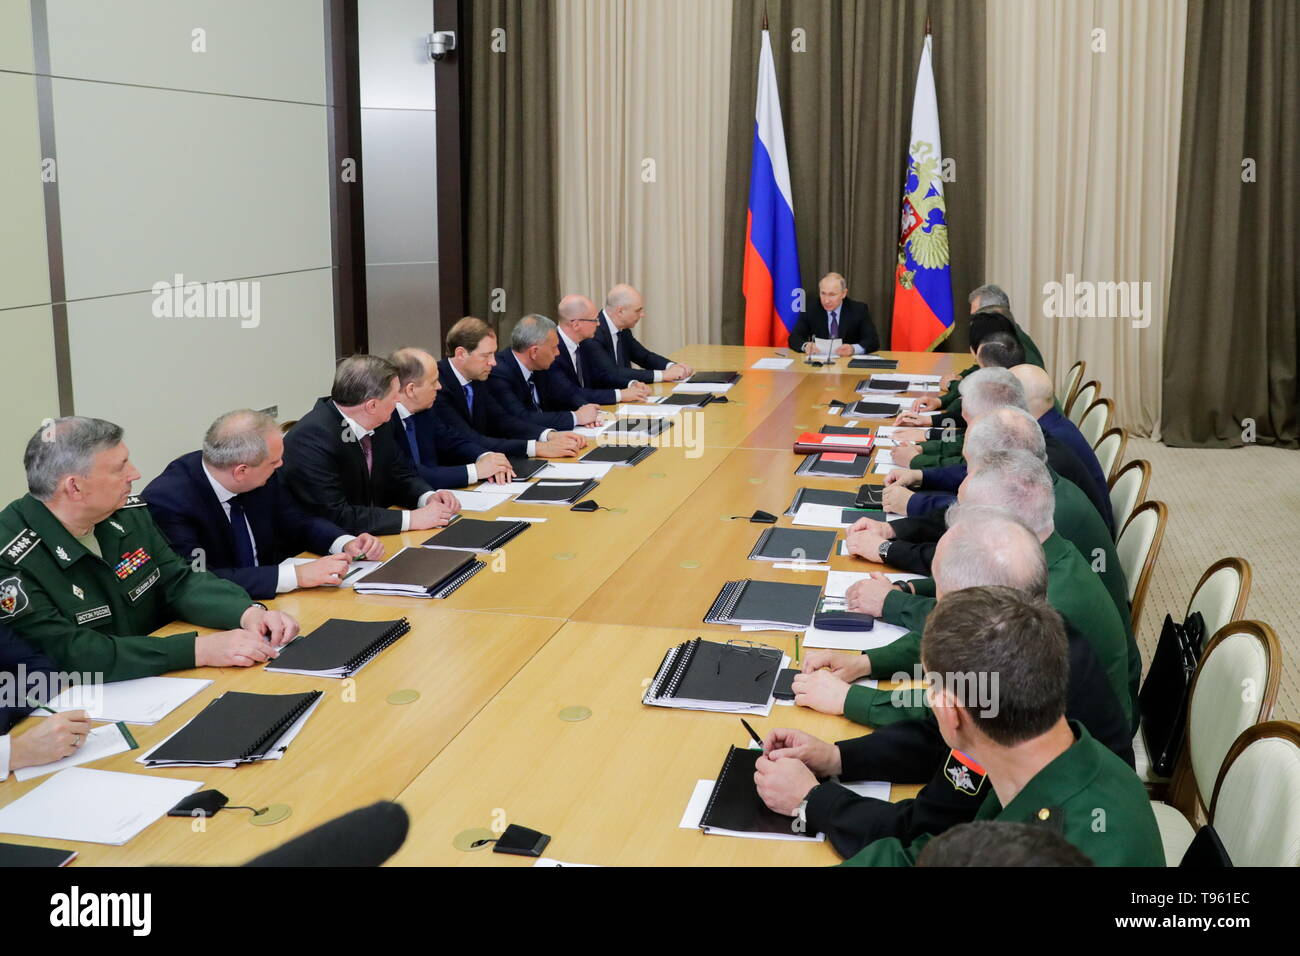 Sochi, Russia. 17th May, 2019. SOCHI, RUSSIA - MAY 17, 2019: Russia's President Vladimir Putin (C back) holds a meeting at Bocharov Ruchei residence to discuss development prospects for the Russian Aerospace Forces. Mikhail Metzel/TASS Credit: ITAR-TASS News Agency/Alamy Live News - Stock Image